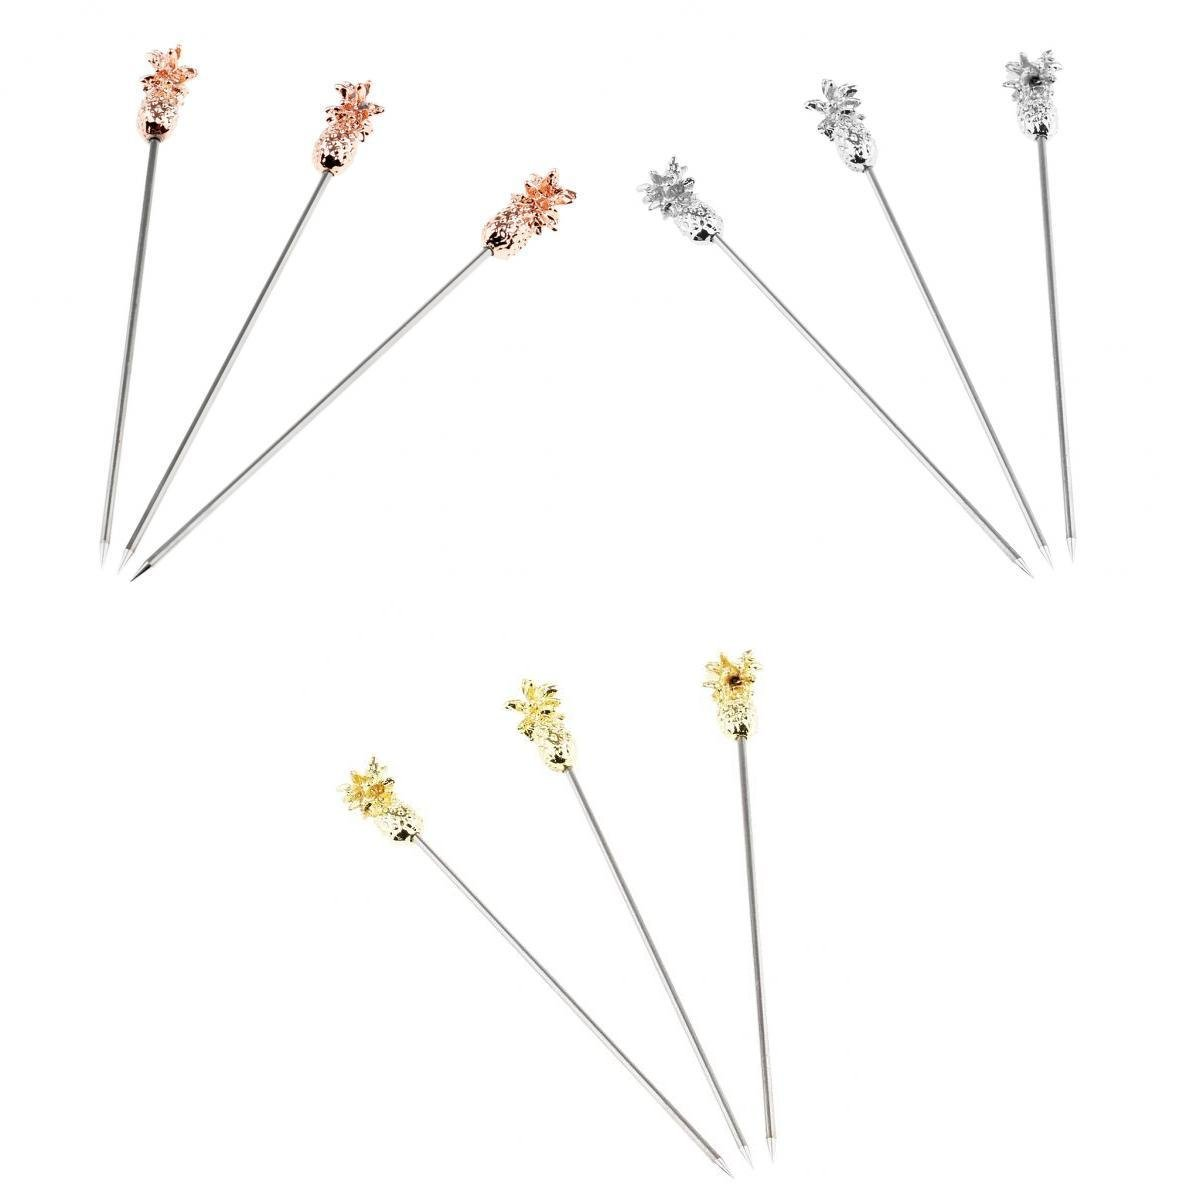 MagiDeal 9PCS Stainless Steel Swizzle Sticks Fruit Pineapple Stick Cocktail Pick for Kitchen Accessory